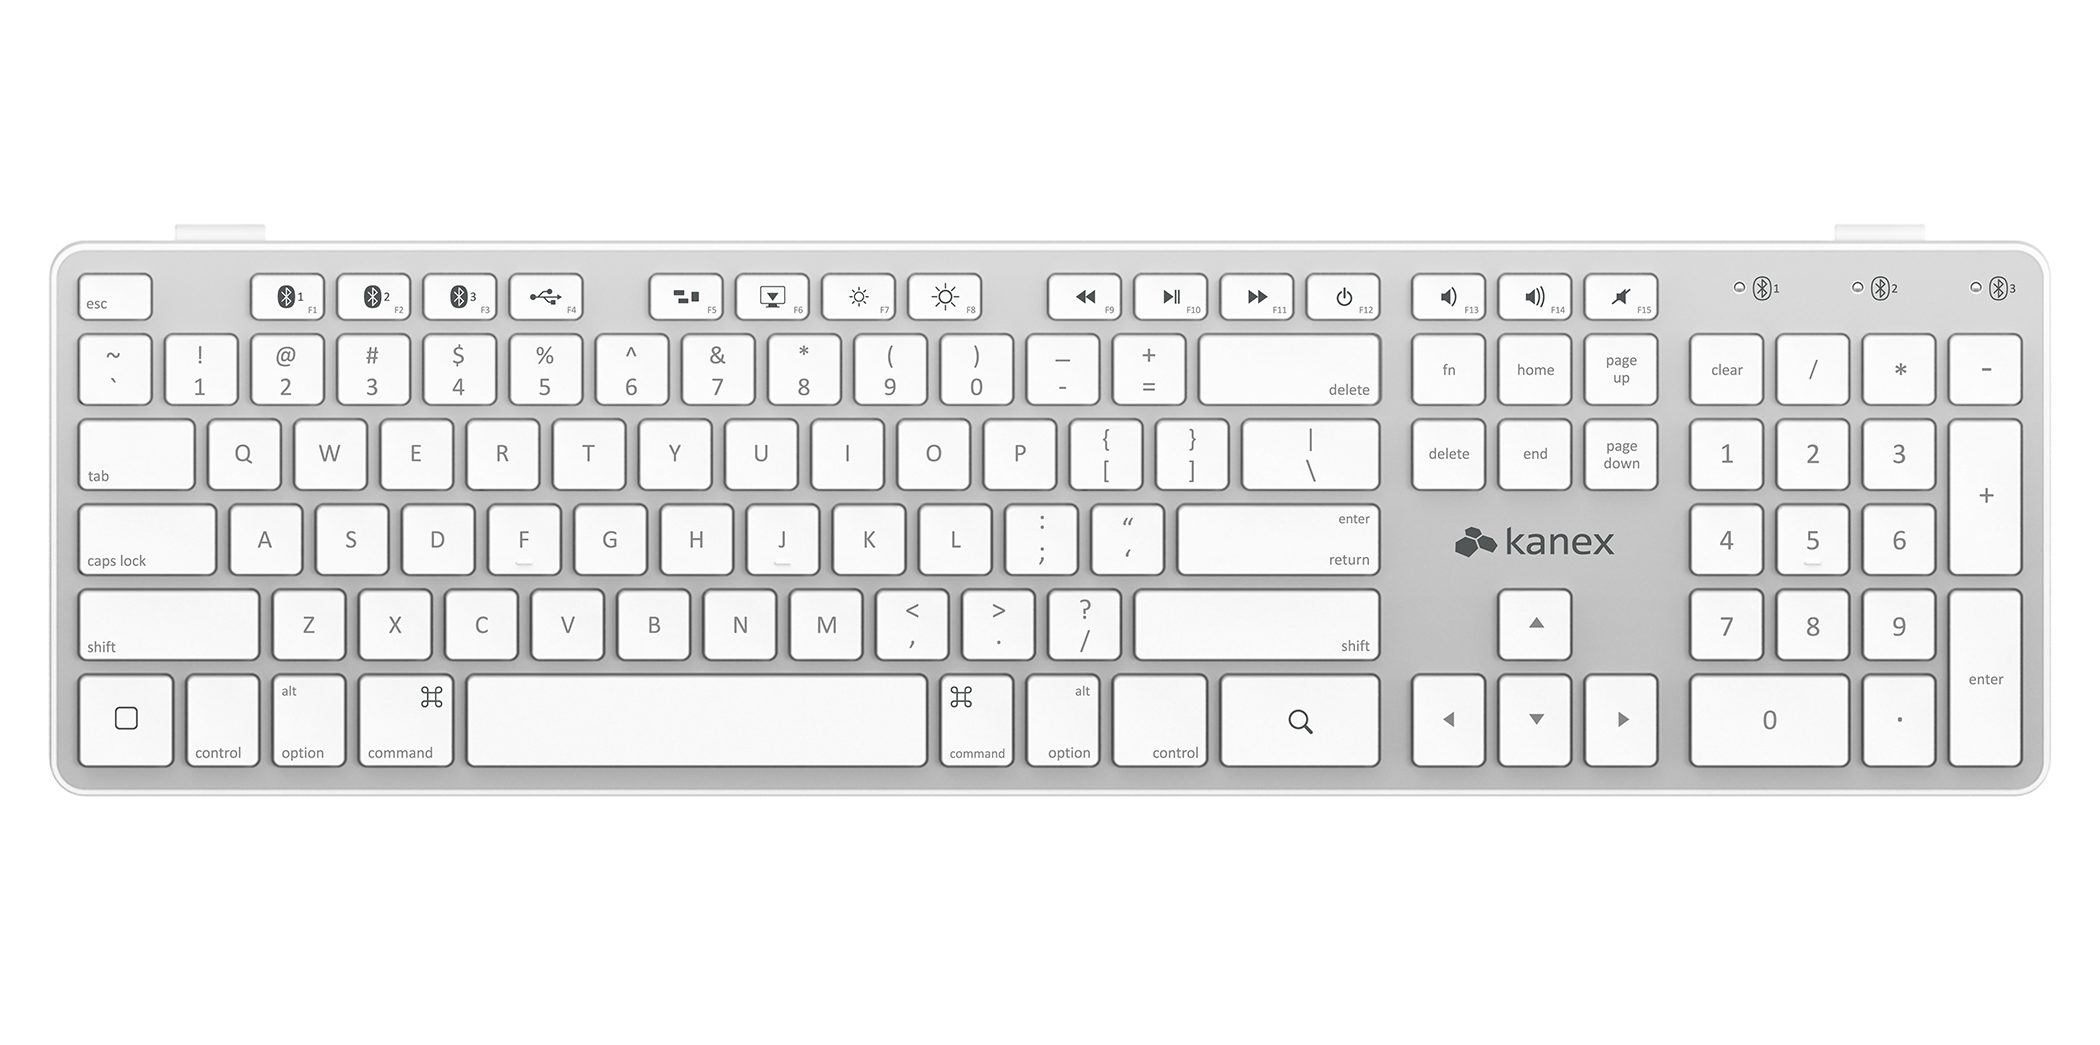 Kanex Multi-Sync Keyboard review: One keyboard, four Macs and iOS ...